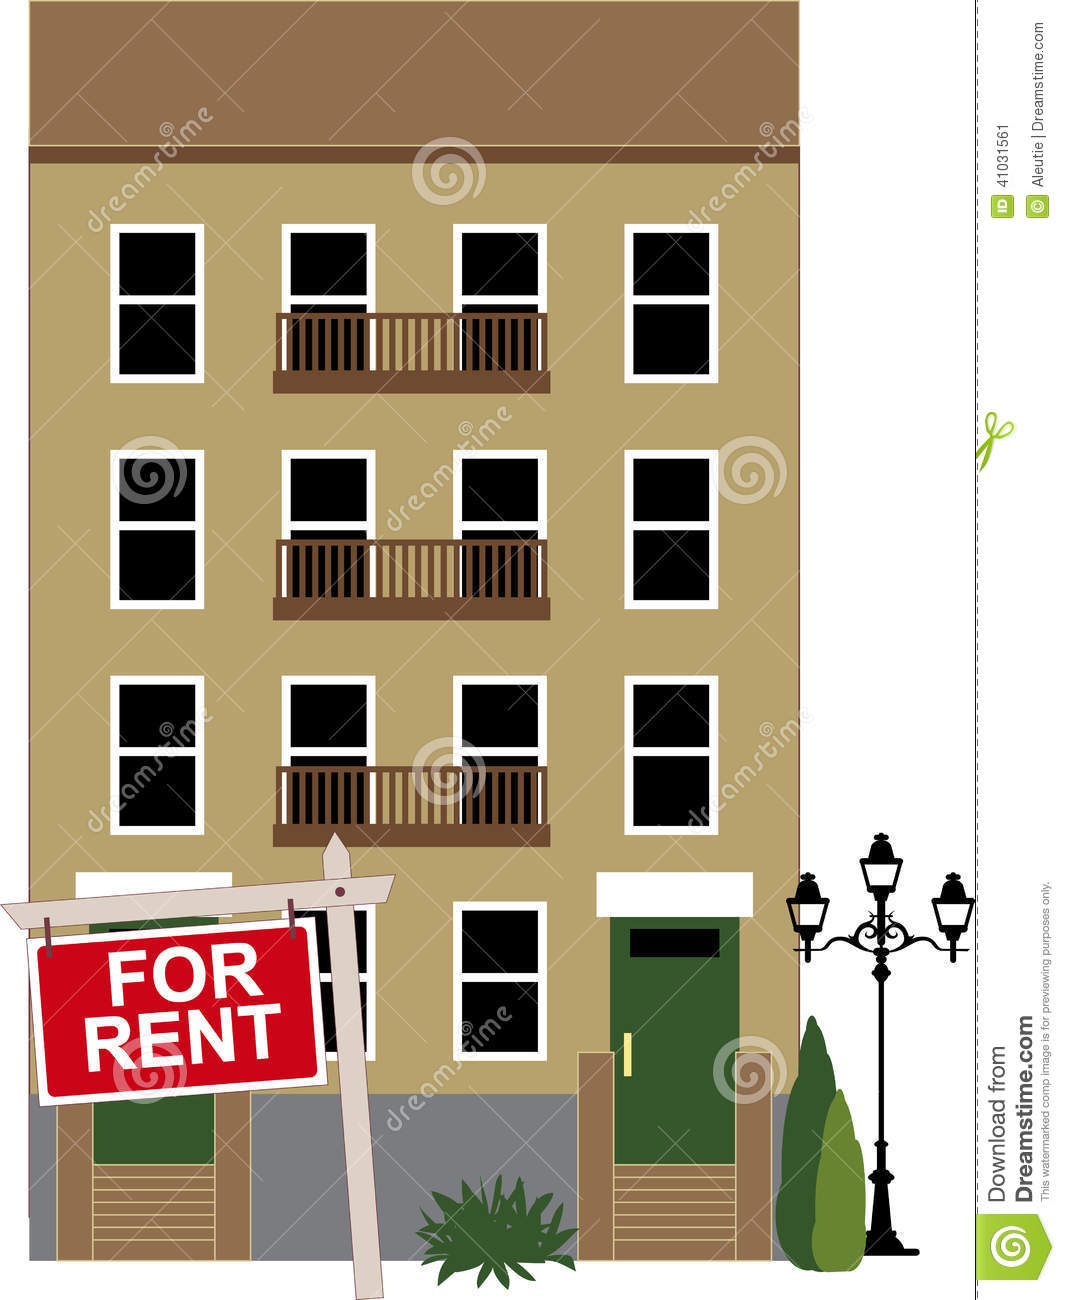 apartment for rent stock vector - image: 41031561